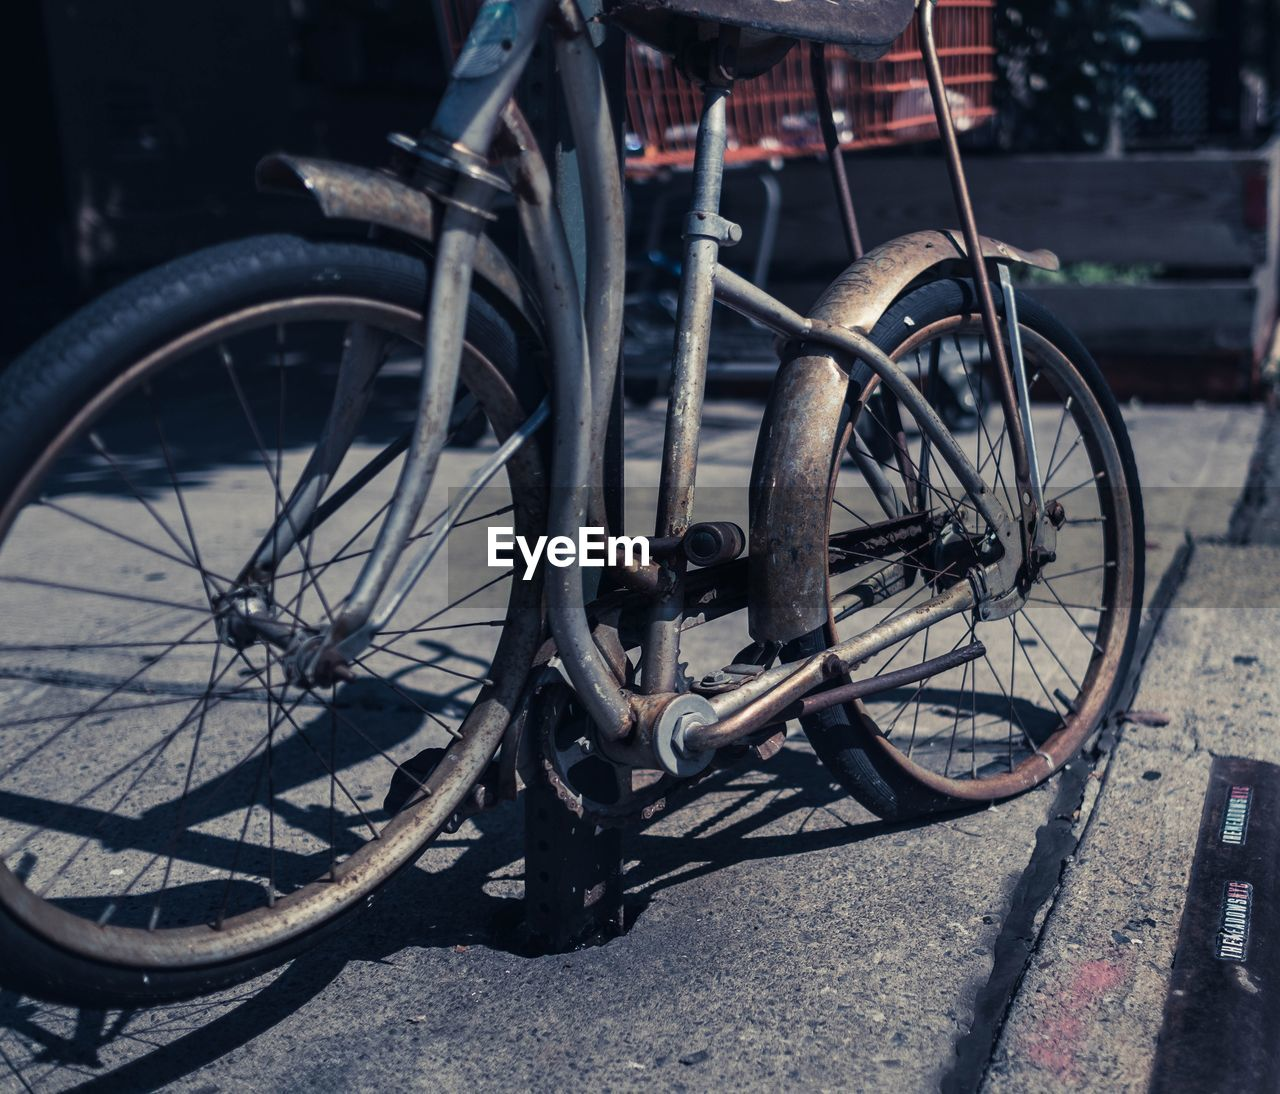 bicycle, transportation, mode of transport, land vehicle, stationary, wheel, outdoors, day, spoke, bicycle rack, no people